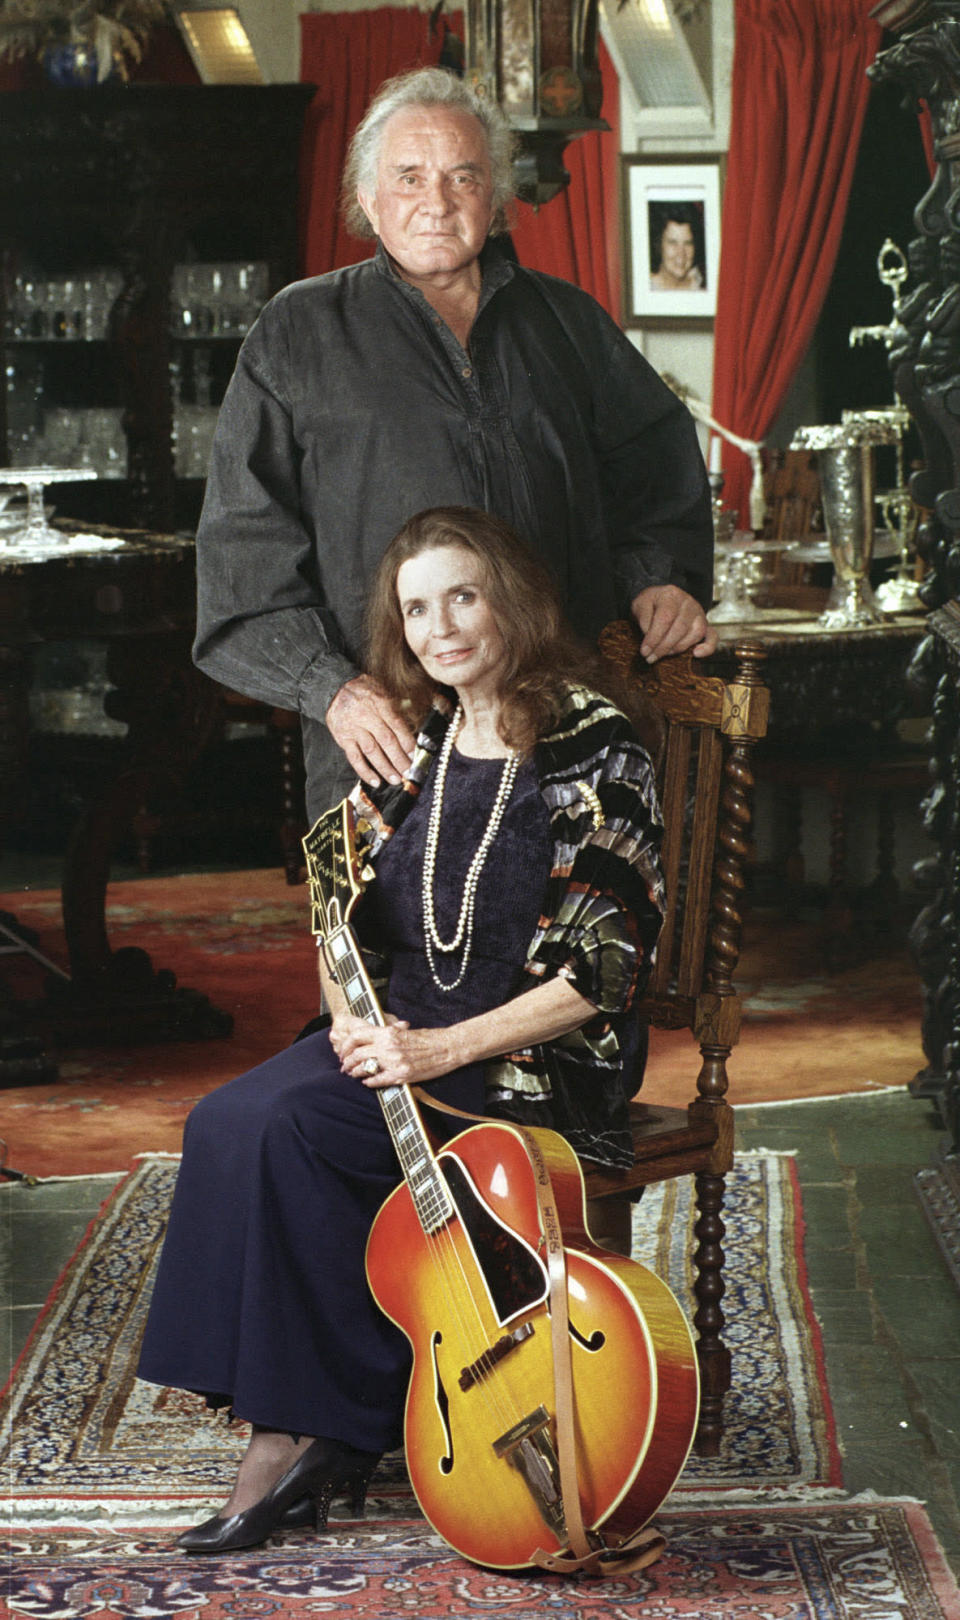 """FILE - In this 1999, file photo, the late country music legend Johnny Cash poses with his wife, the late June Carter Cash, in their Hendersonville, Tenn., home. The Man in Black is about to get his own day in Arkansas. The Arkansas House on Tuesday, April 20, 2021, gave unanimous final approval to a bill that would make Feb. 26 """"Johnny Cash Day,"""" sending it to Gov. Asa Hutchinson, who plans to sign it. (AP Photo/Mark Humphrey/File)"""